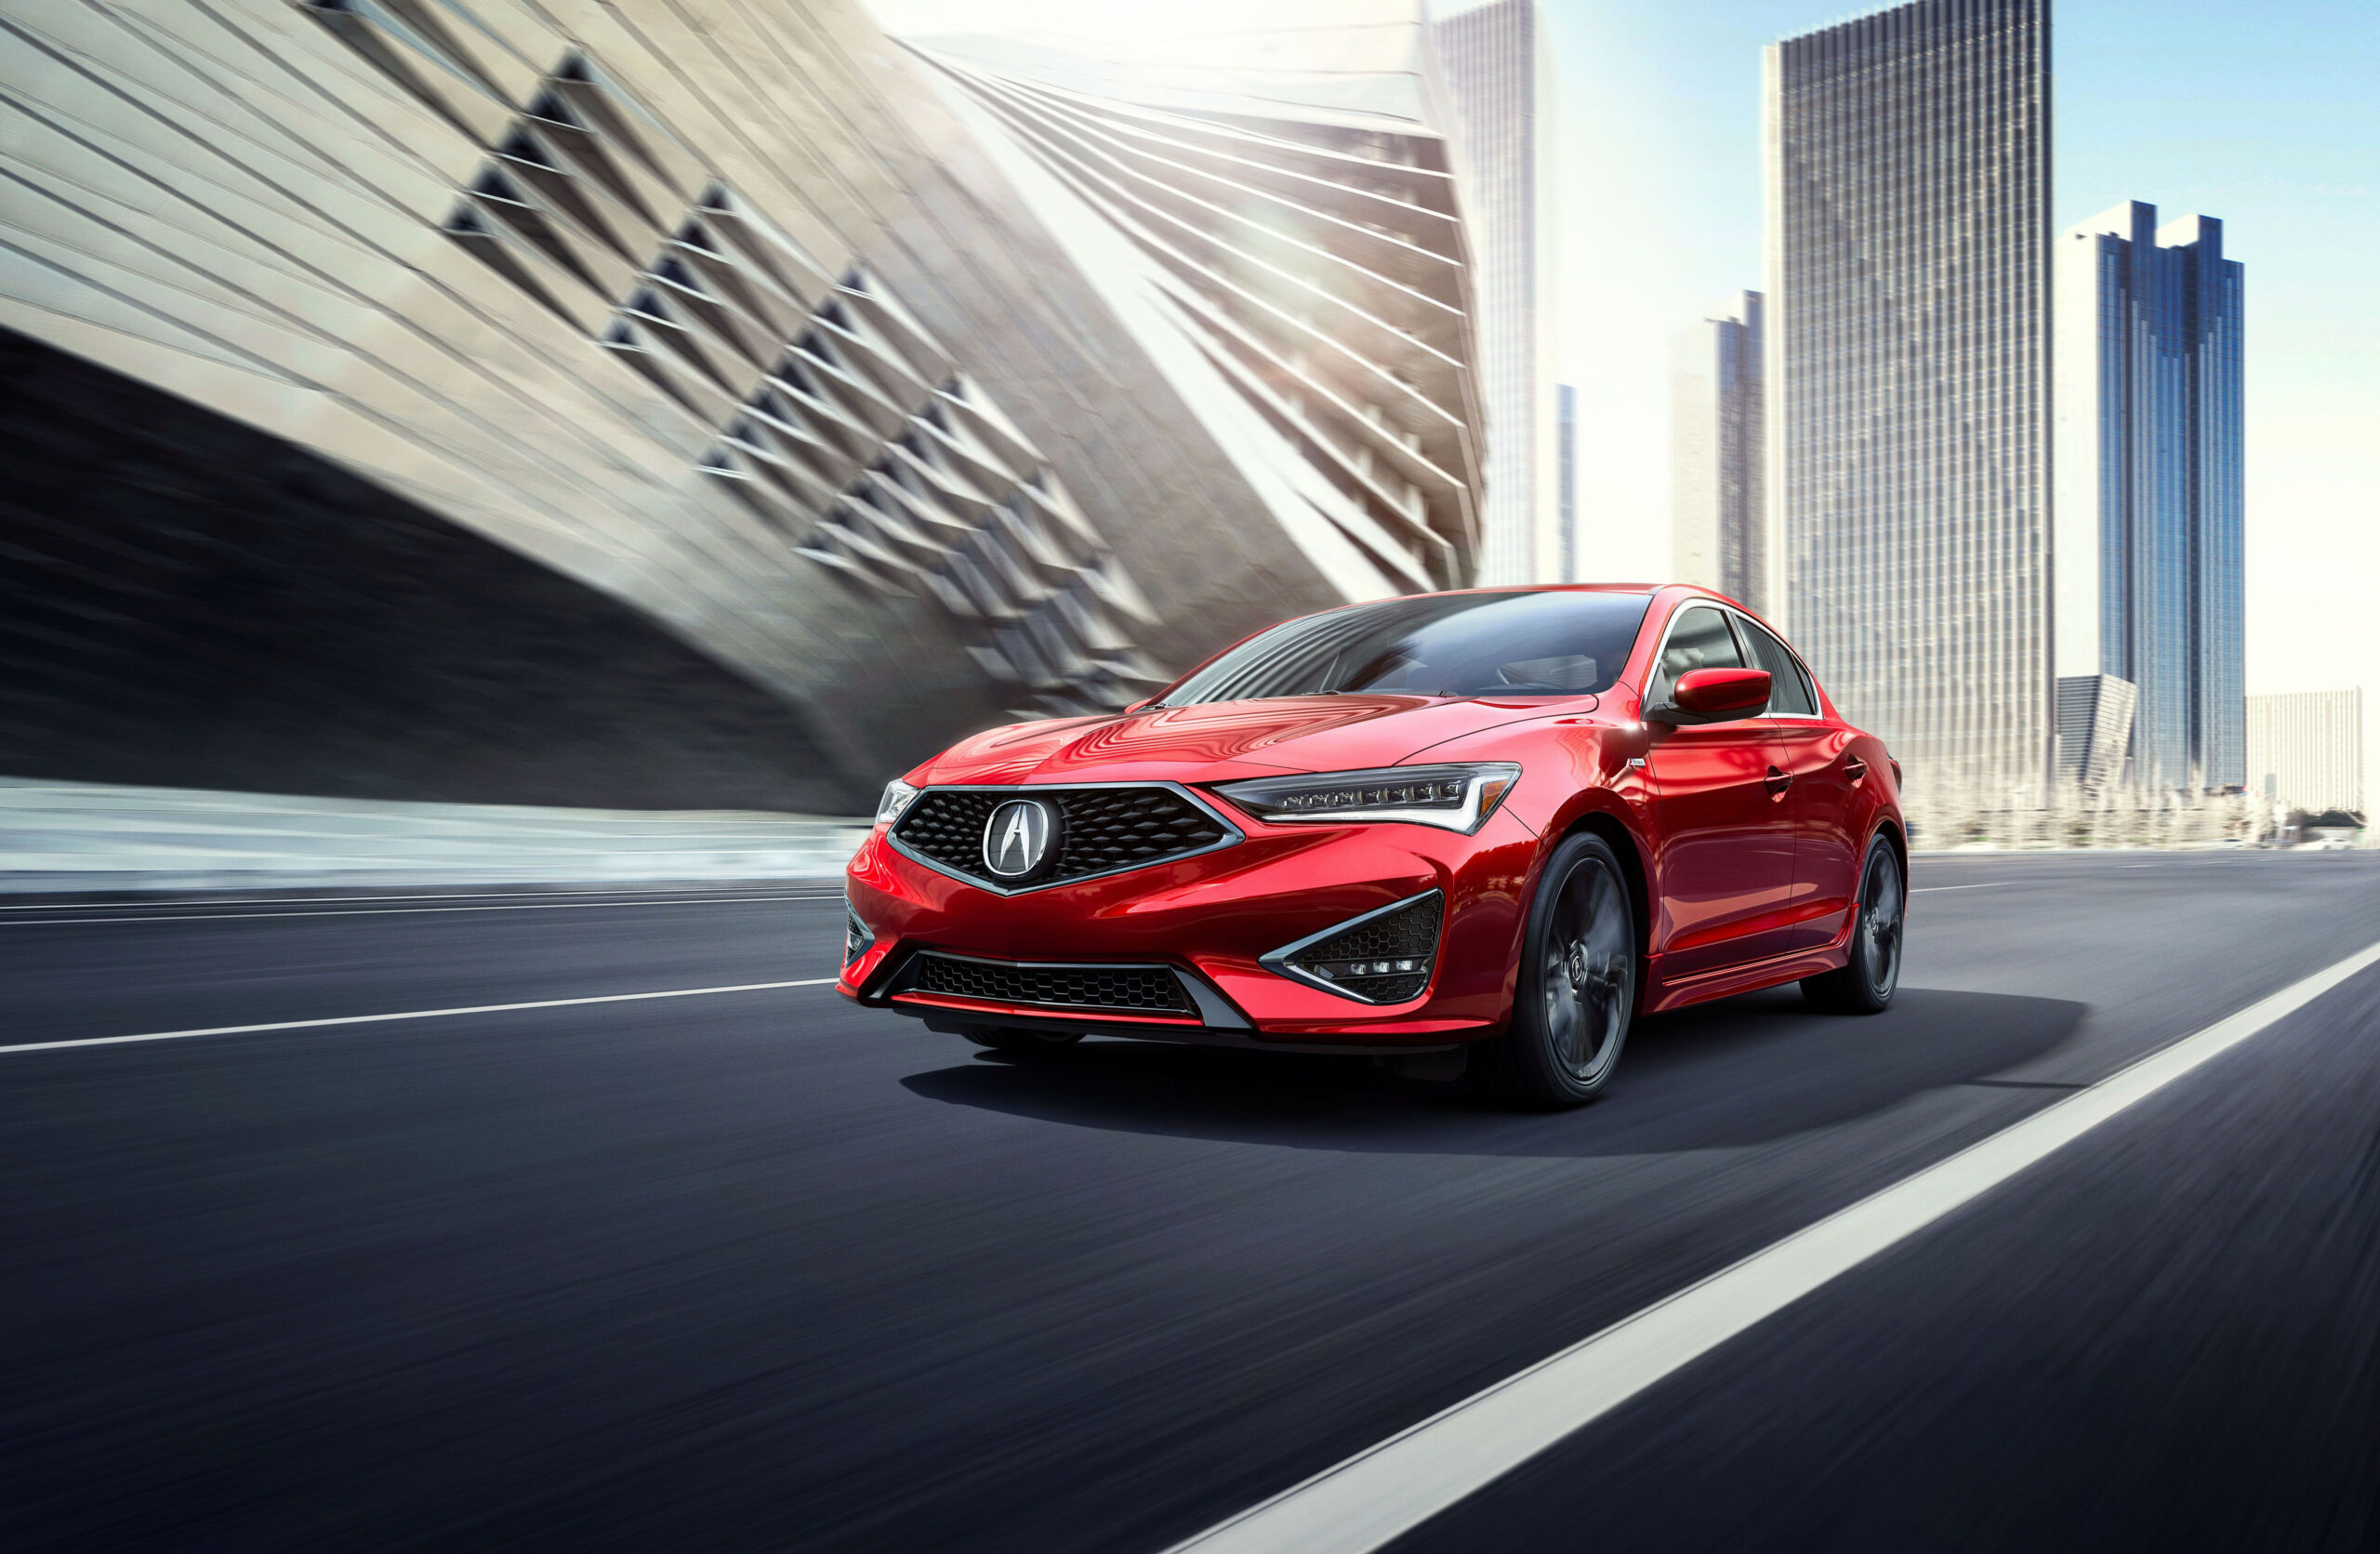 6 Acura ILX Review, Pricing, and Specs